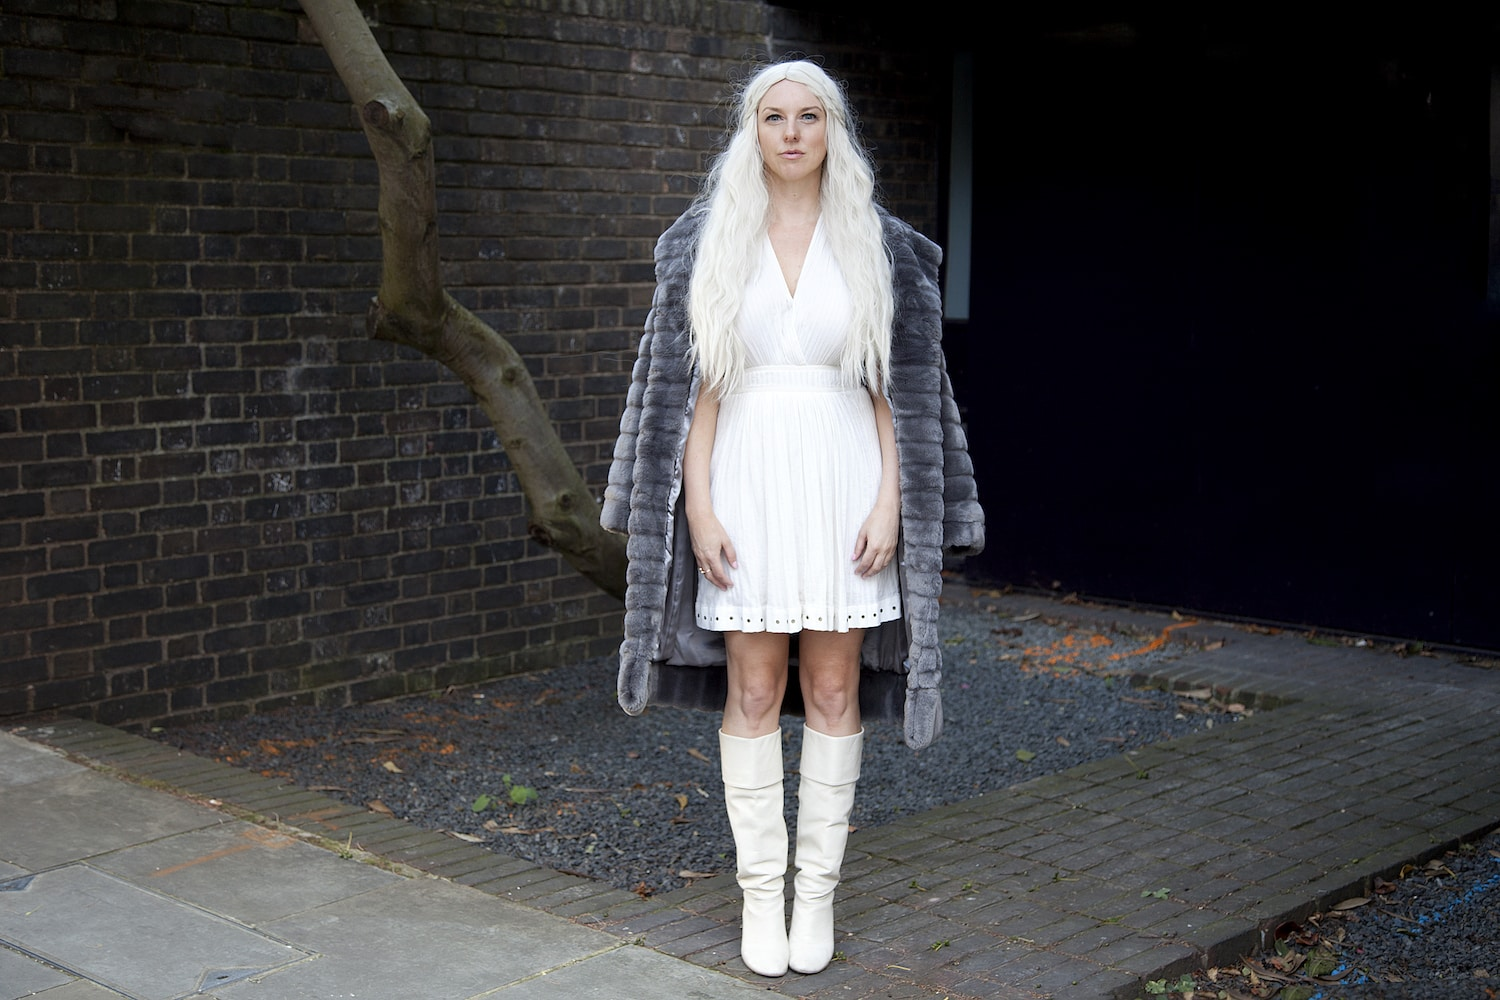 Claire_Etchell_How_to_market_halloween_PR_NakedPRGirl